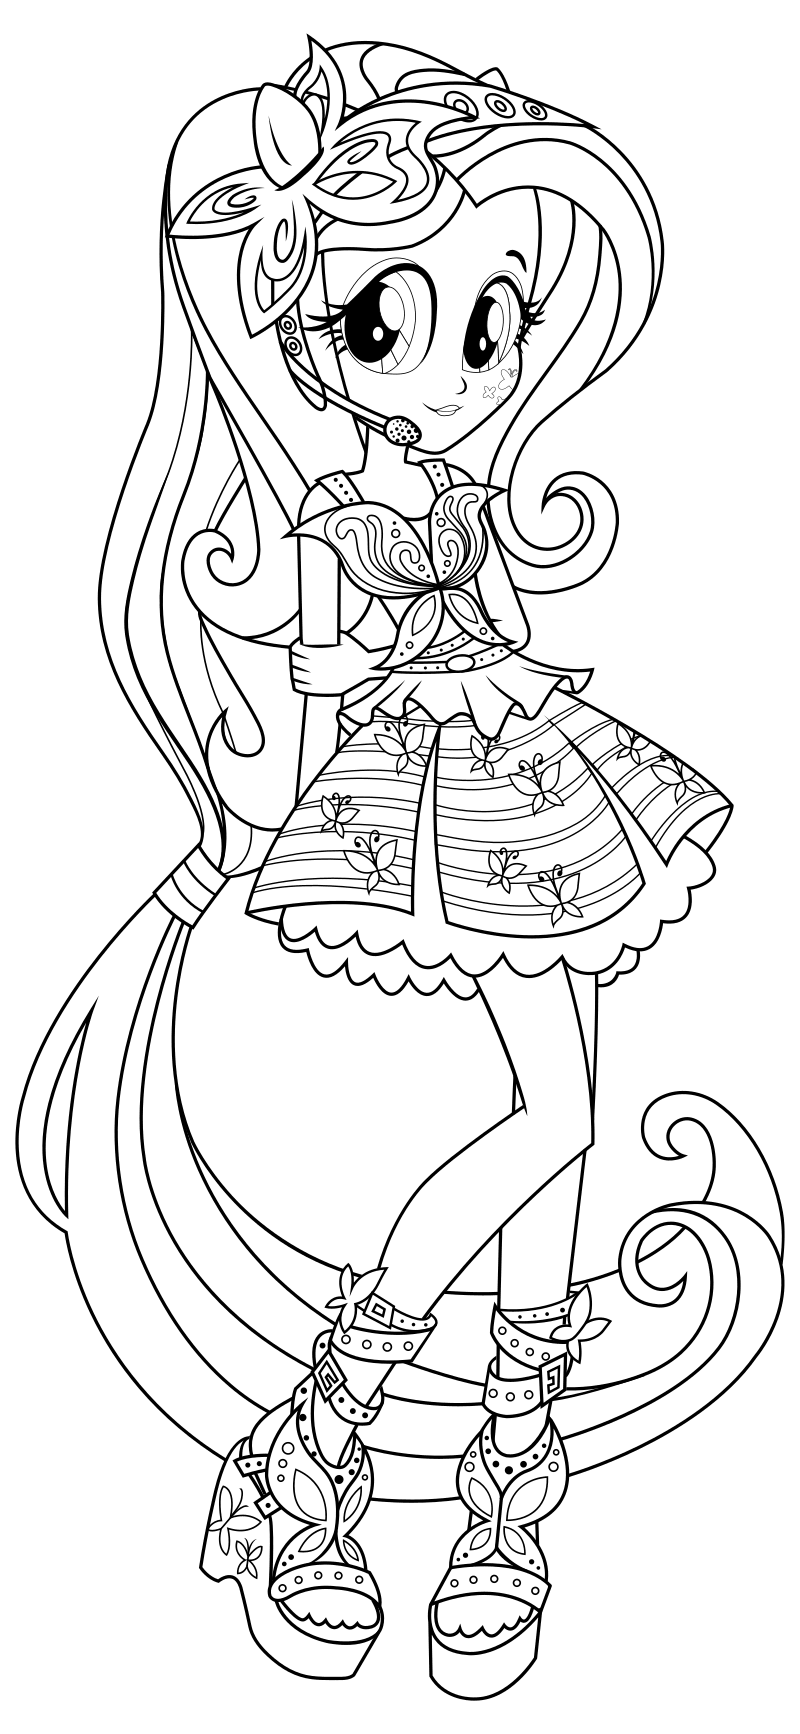 My little pony equestria girl twilight sparkle coloring pages